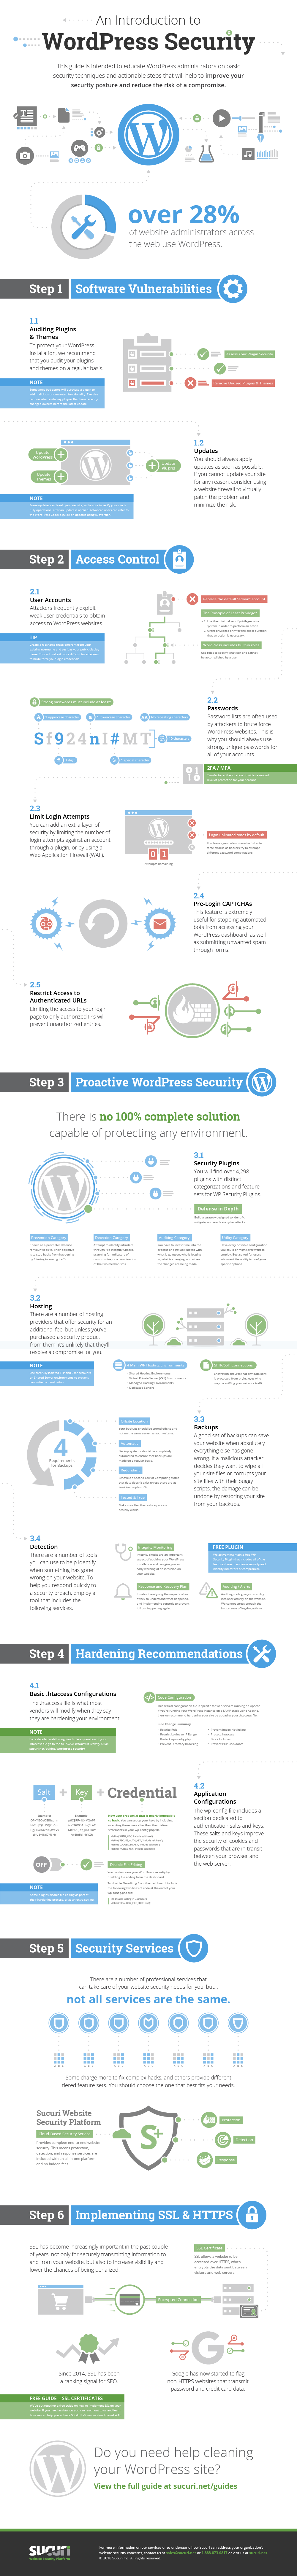 Introduction to WordPress Security InfoGraphic